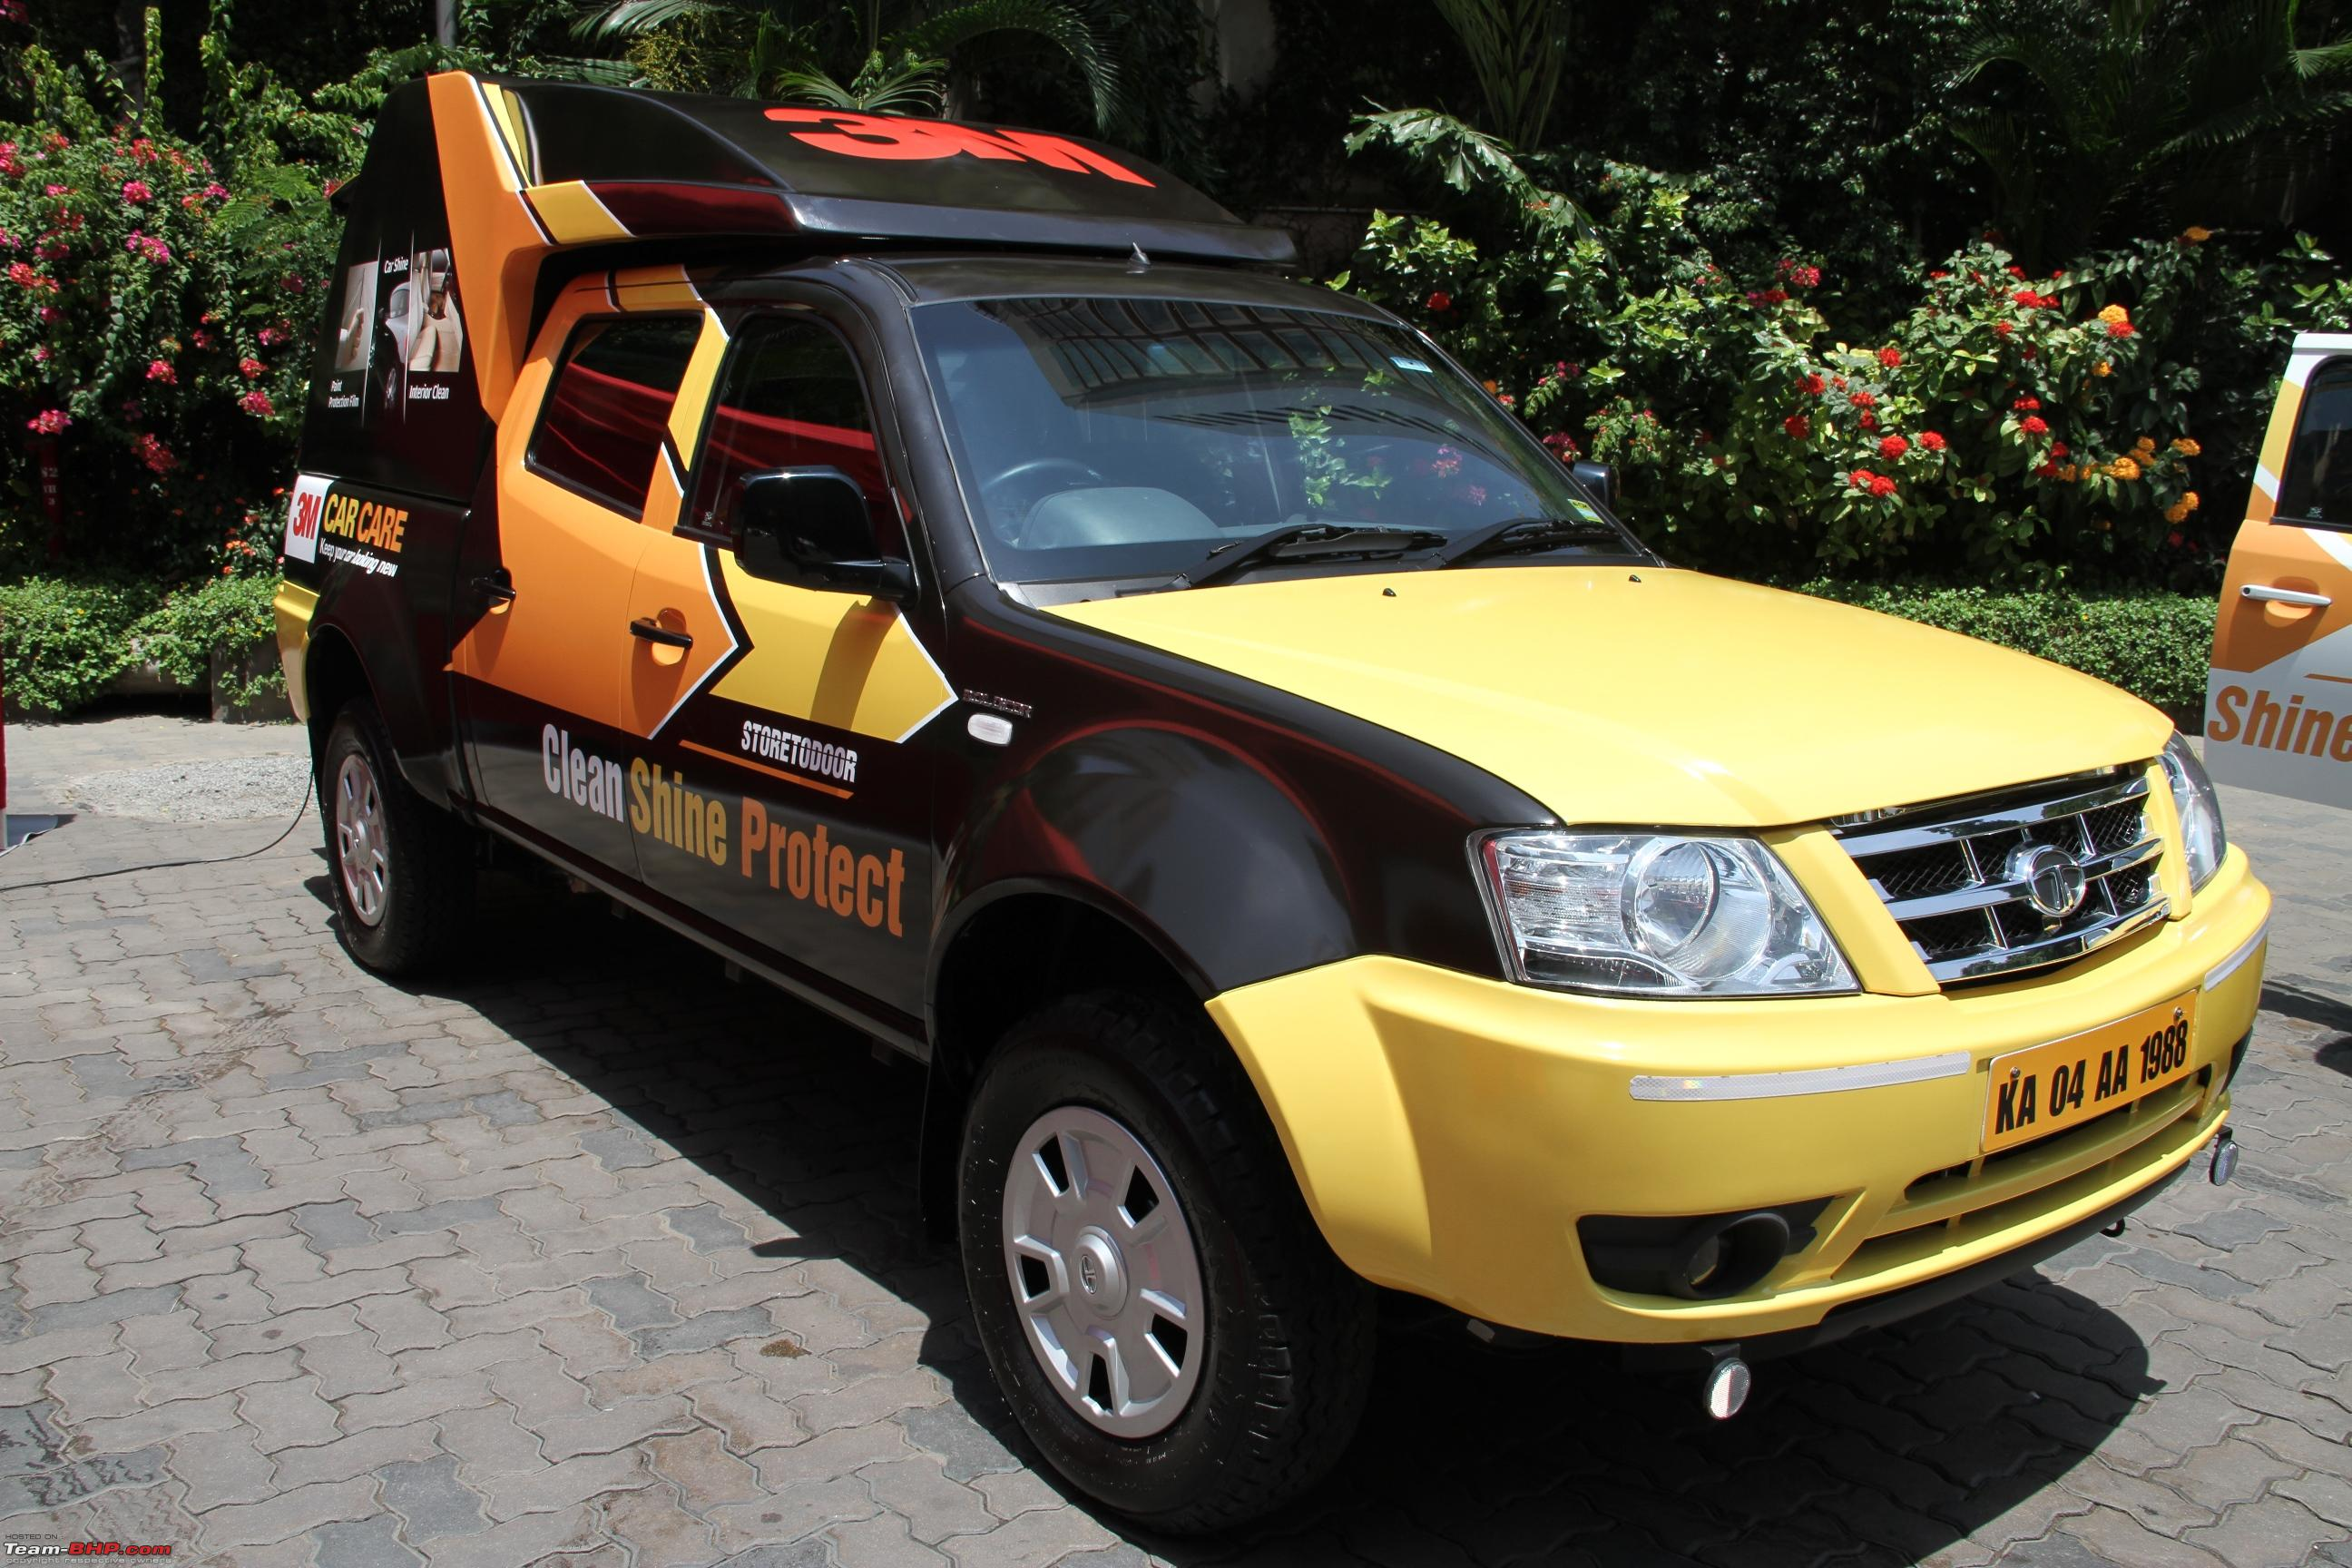 3m Car Care Launches At Your Home Service In India Team Bhp